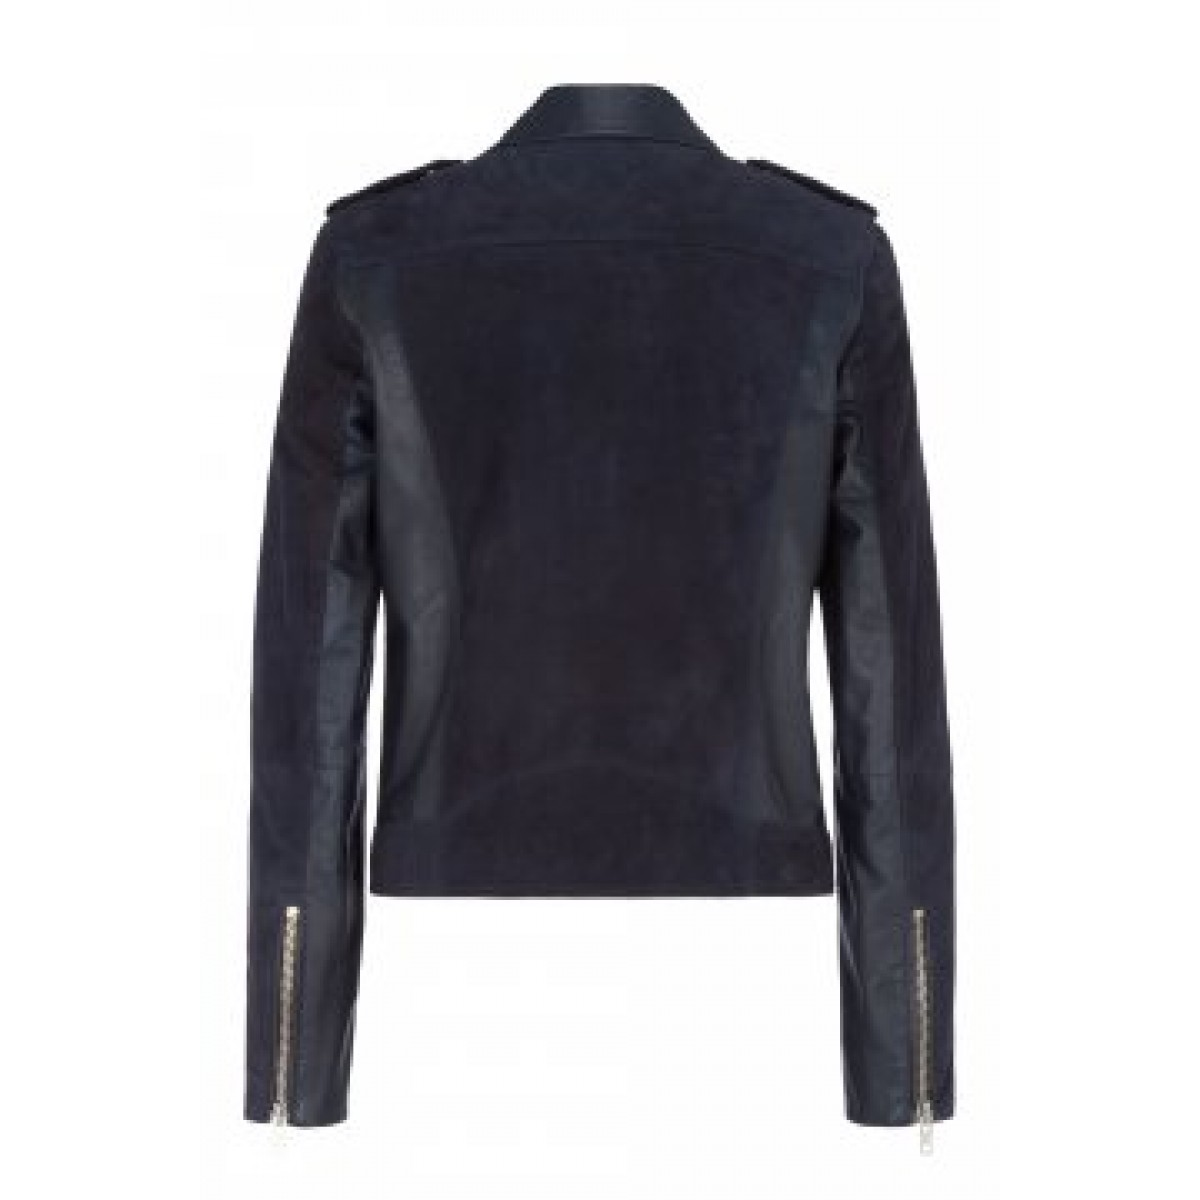 Oui 45548 Jacket Black-35